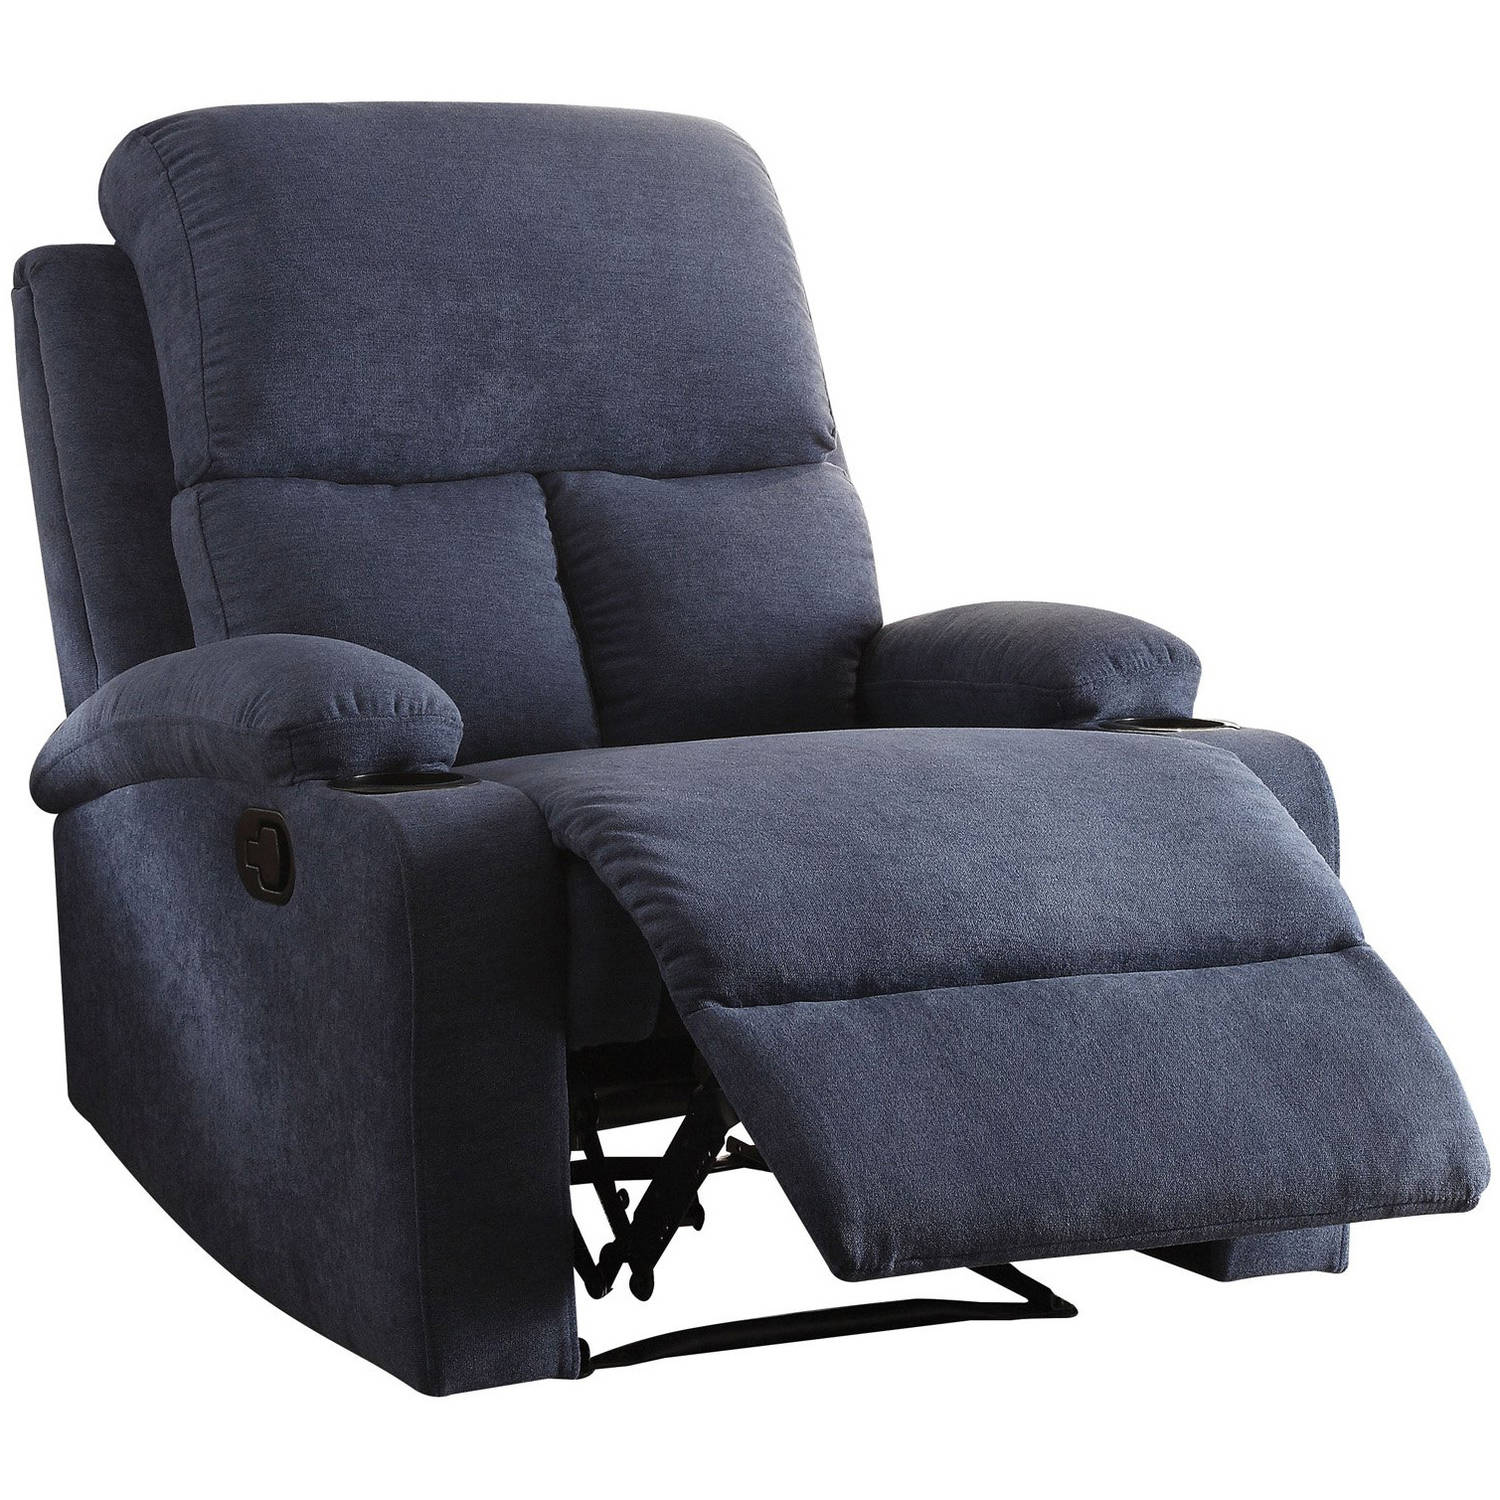 ACME Rosia Linen Recliner with Cup Holder Multiple Colors  sc 1 st  Walmart & ACME Rosia Linen Recliner with Cup Holder Multiple Colors ... islam-shia.org